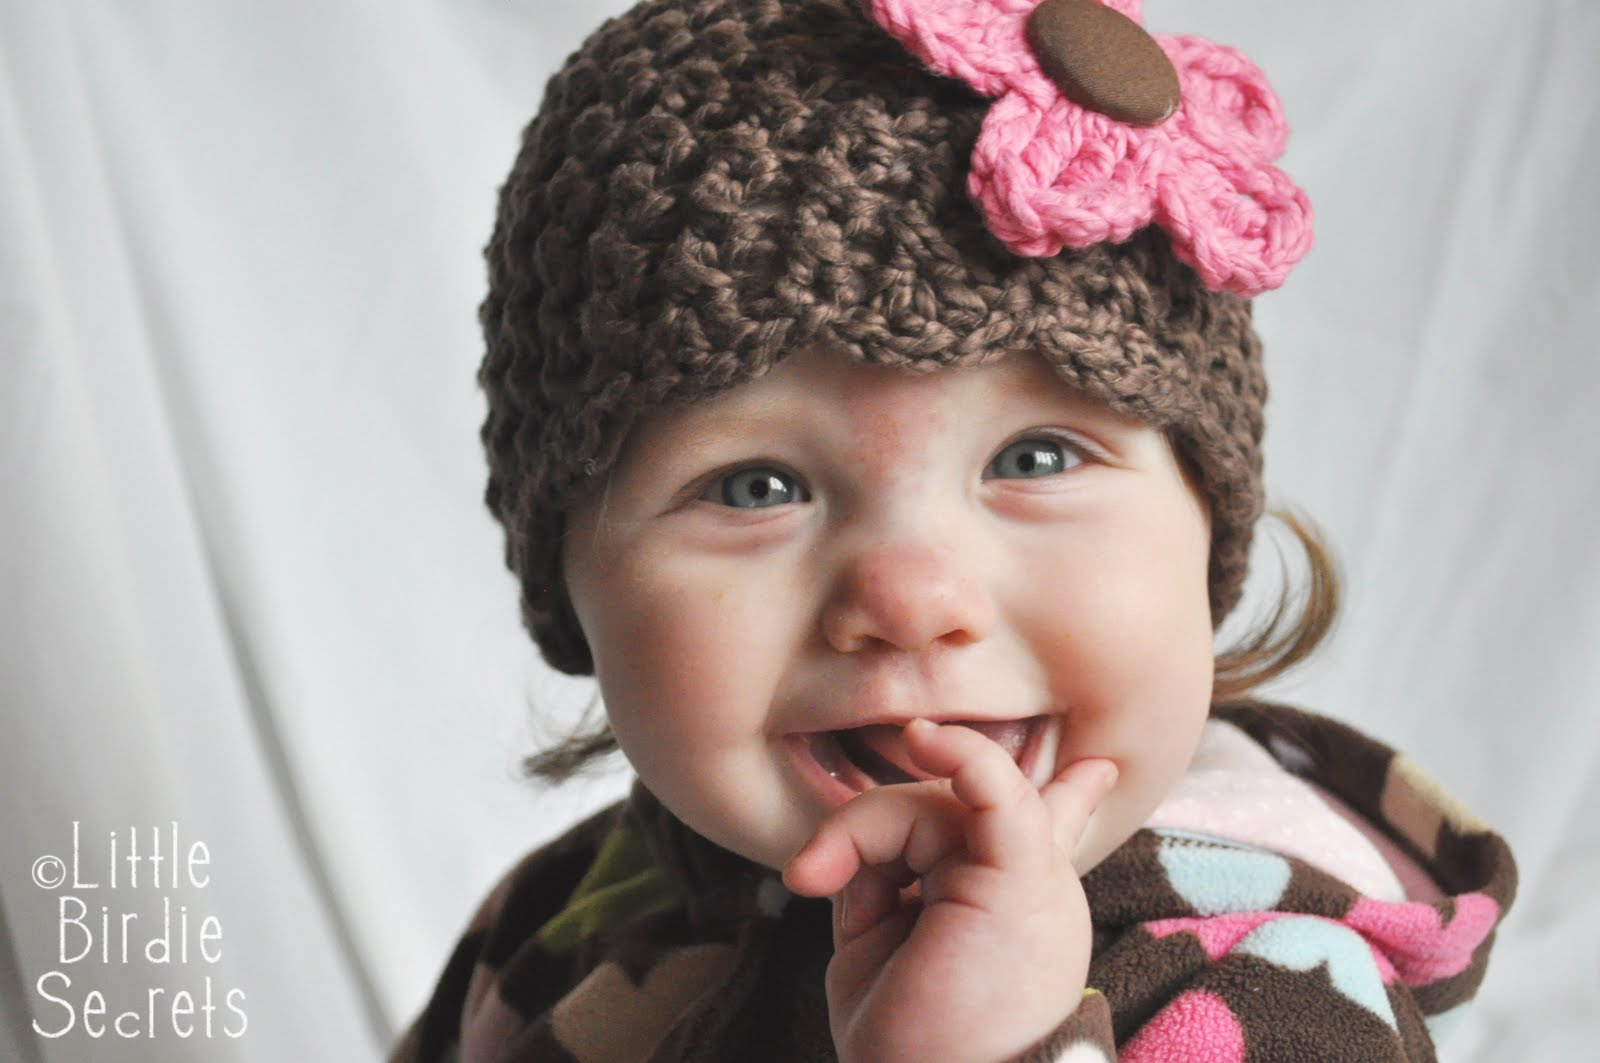 Crochet Patterns Baby Hats : Free Crochet Pattern: Slouchy Beanie - Crochet Spot - Crochet